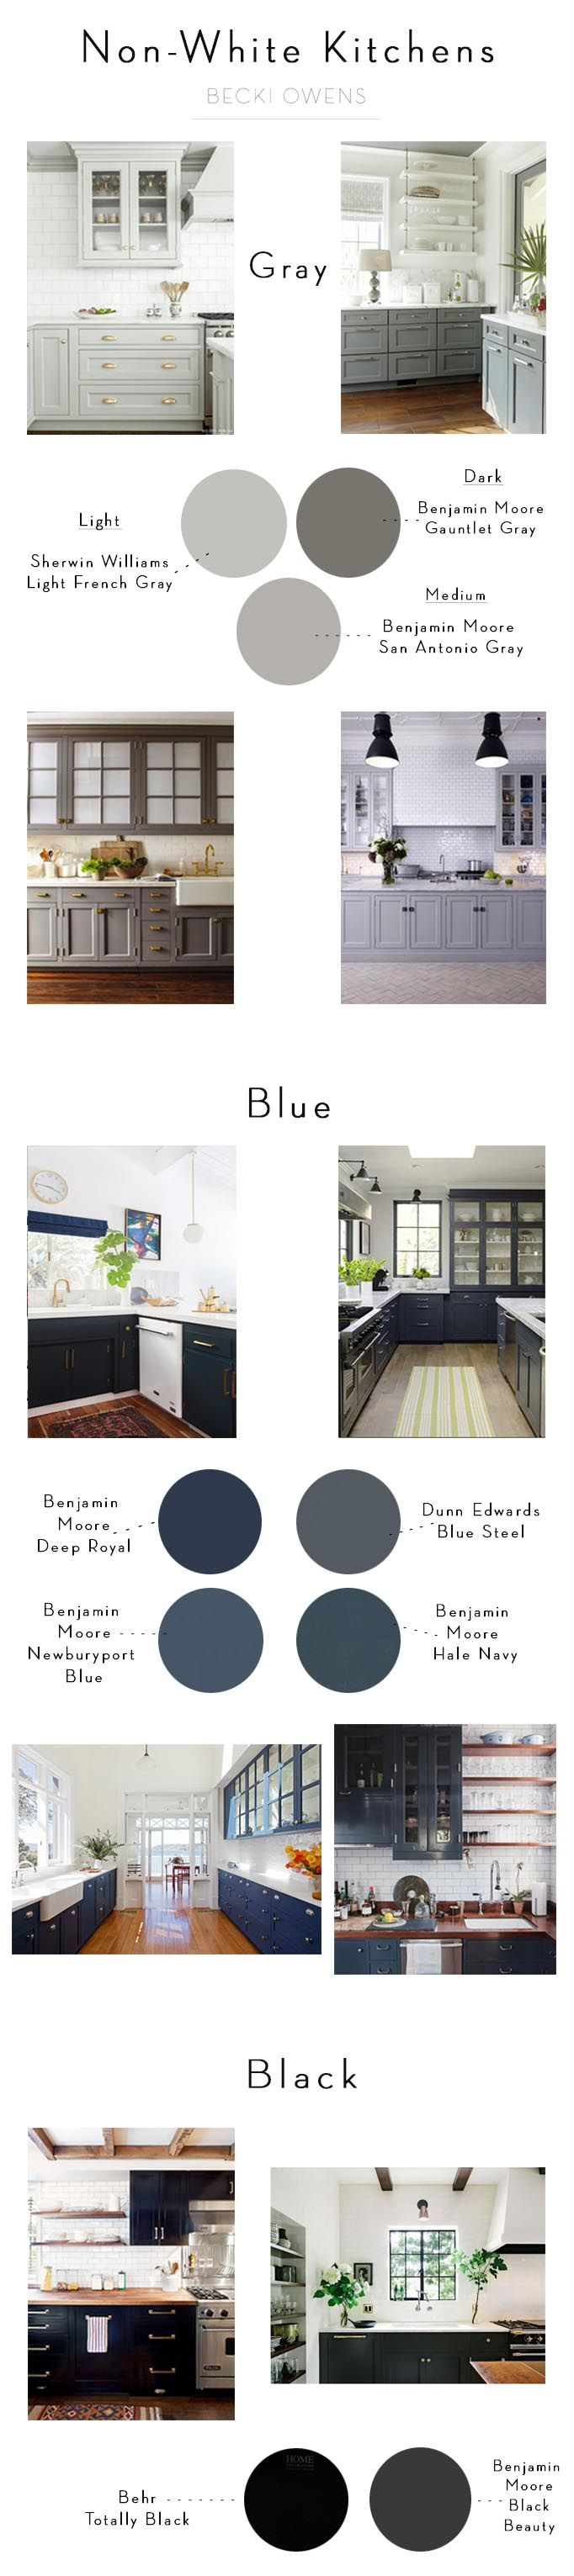 461 best paint colors images on Pinterest | Blue doors, French doors ...